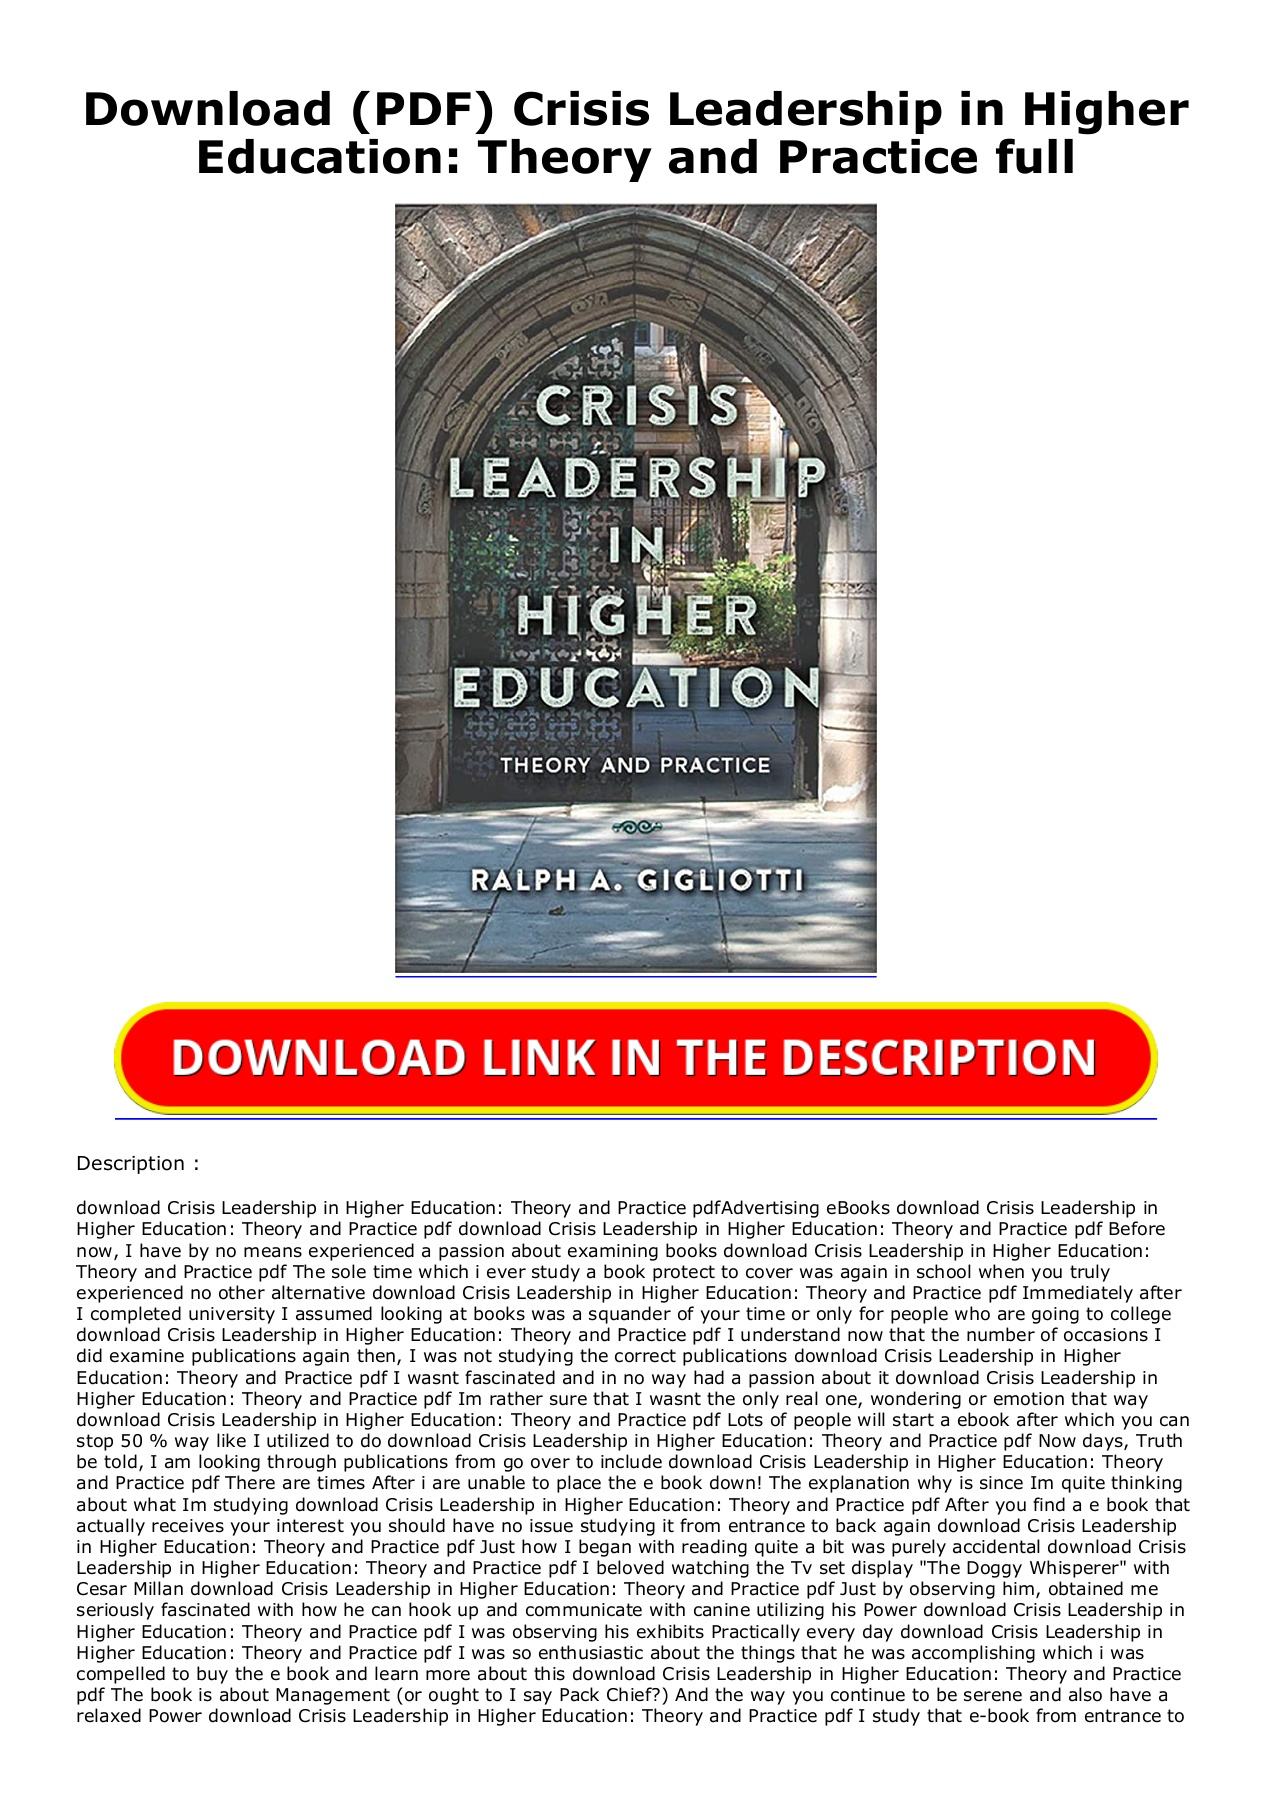 Leadership Theory And Practice Pdf